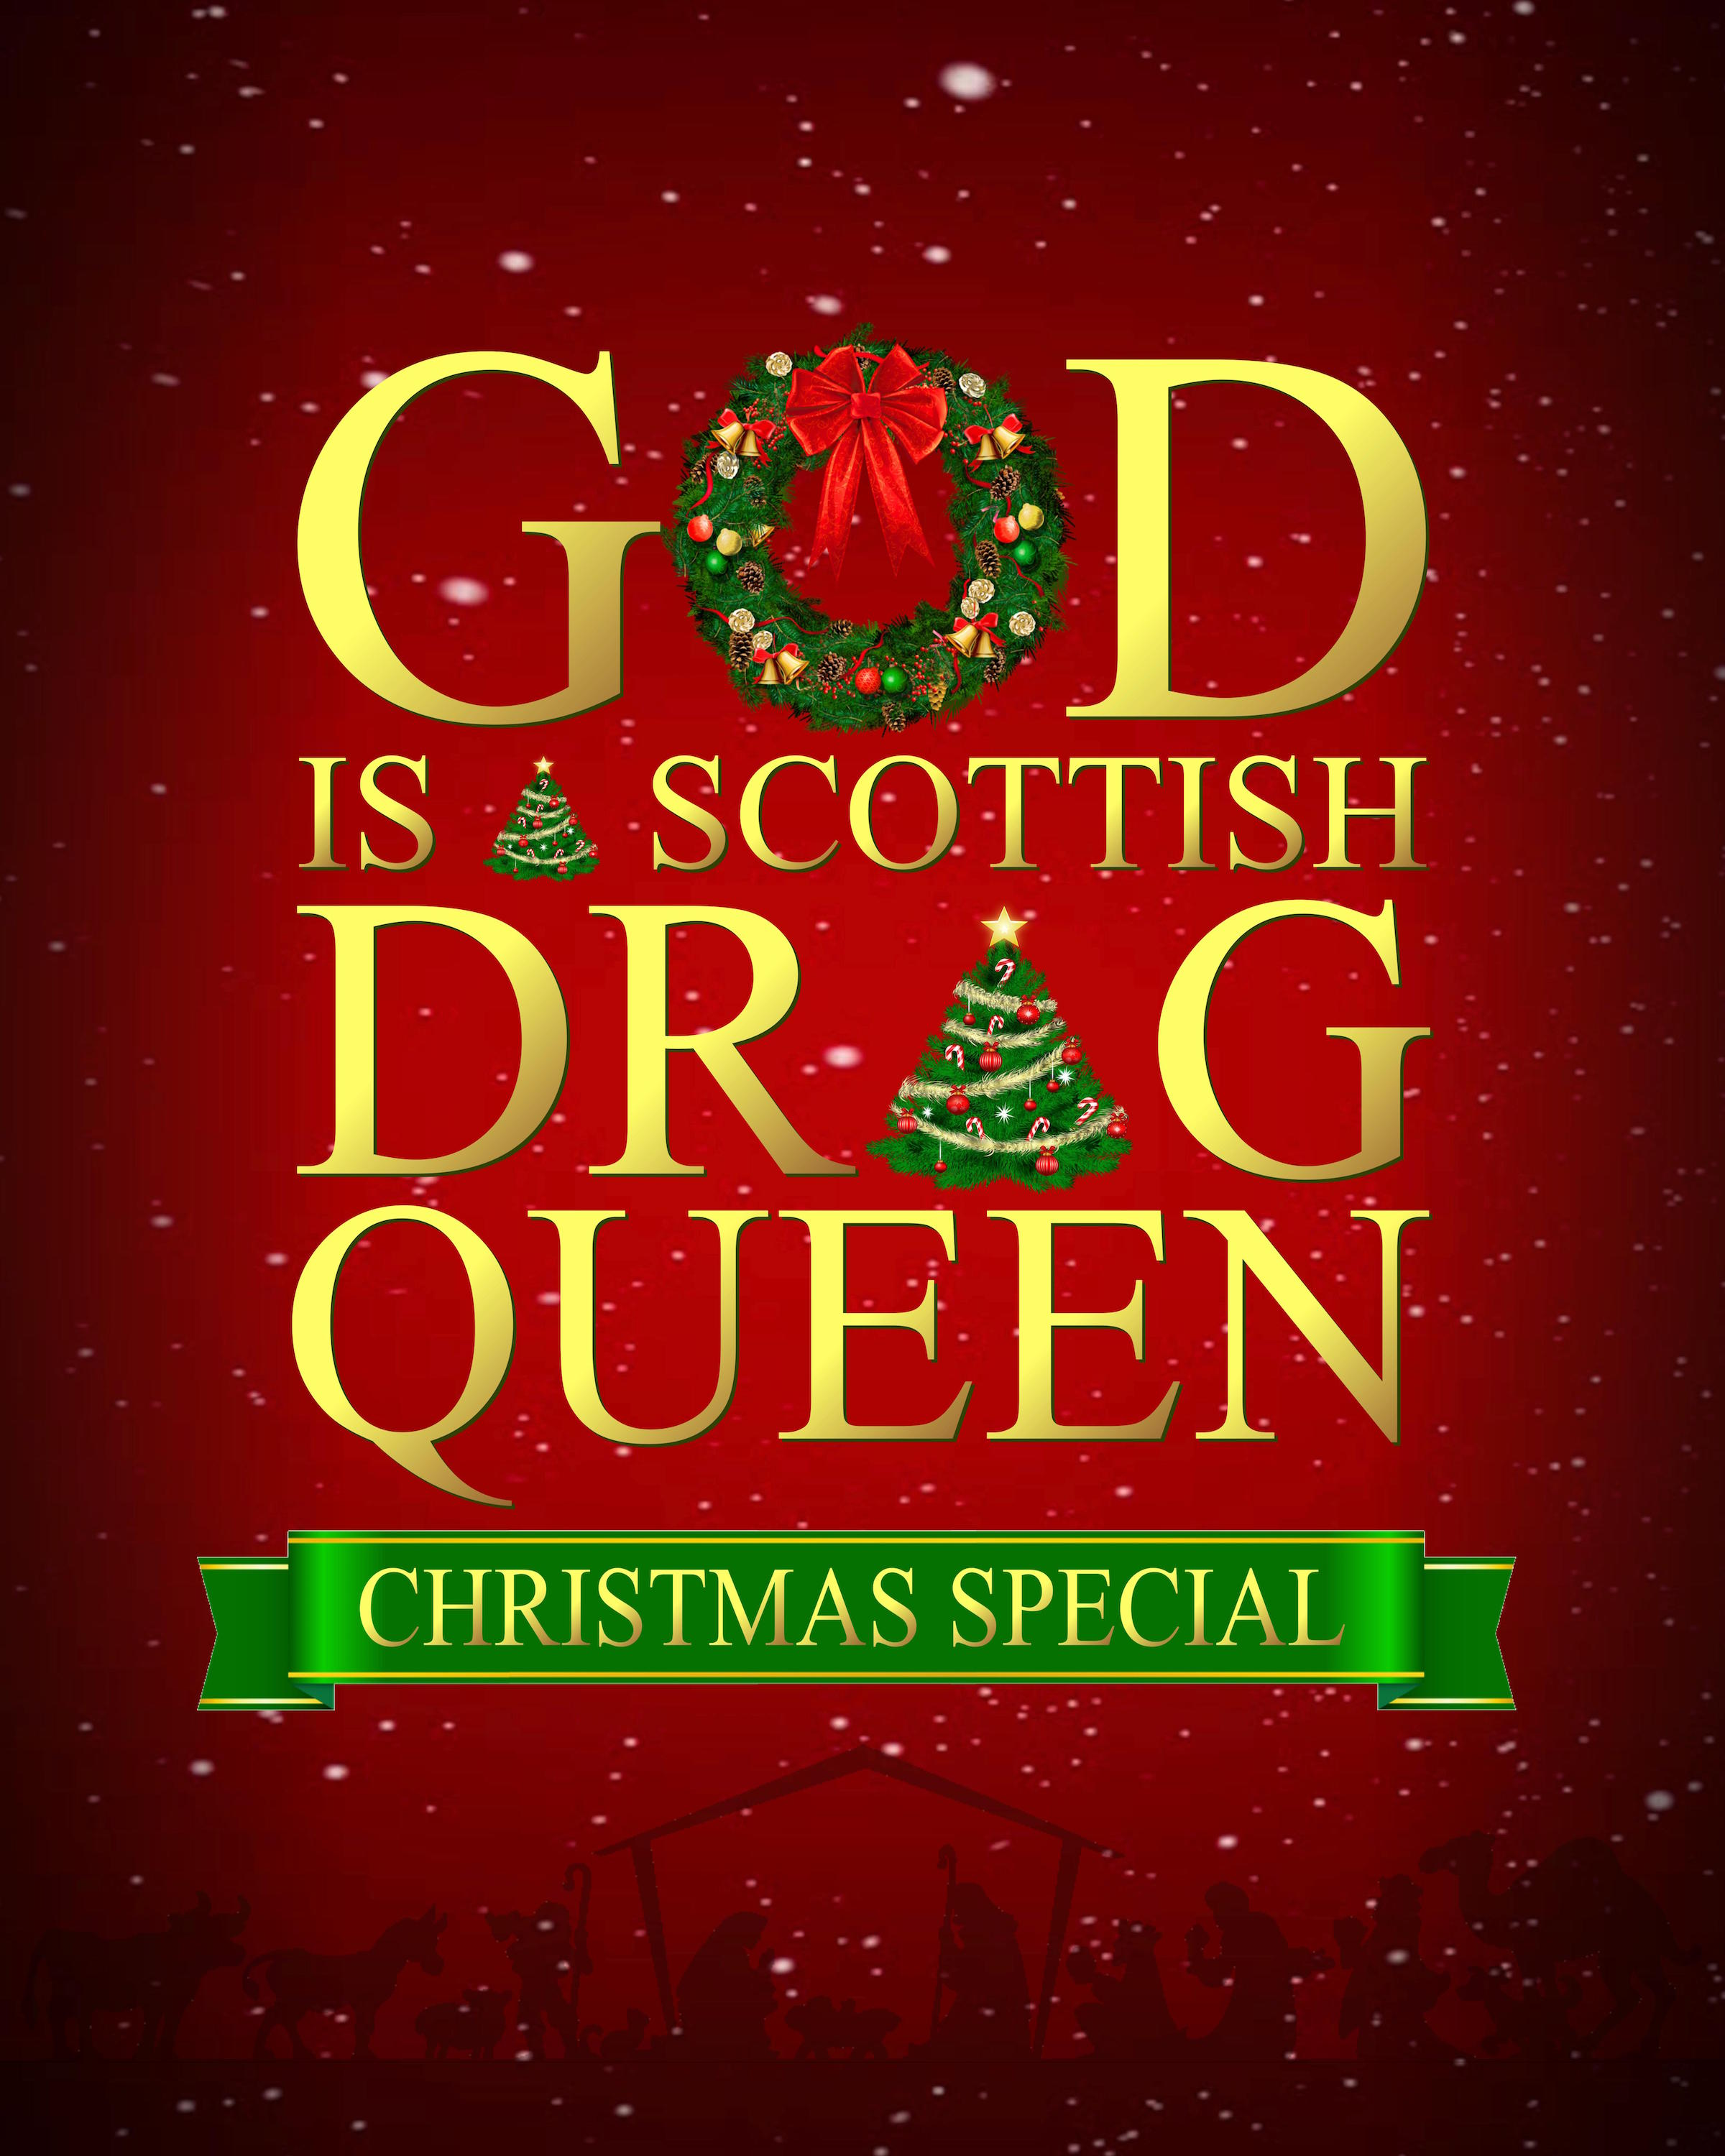 God Is A Scottish Drag Queen: A Christmas Special - God, dressed in a floral power suit, comes down to skewer everything from fruit cake to Boxing Day in an all new and special holiday addition! Featuring an opening act performing all of the holiday favourites this is the best and only way to celebrate Jesus's birthday!